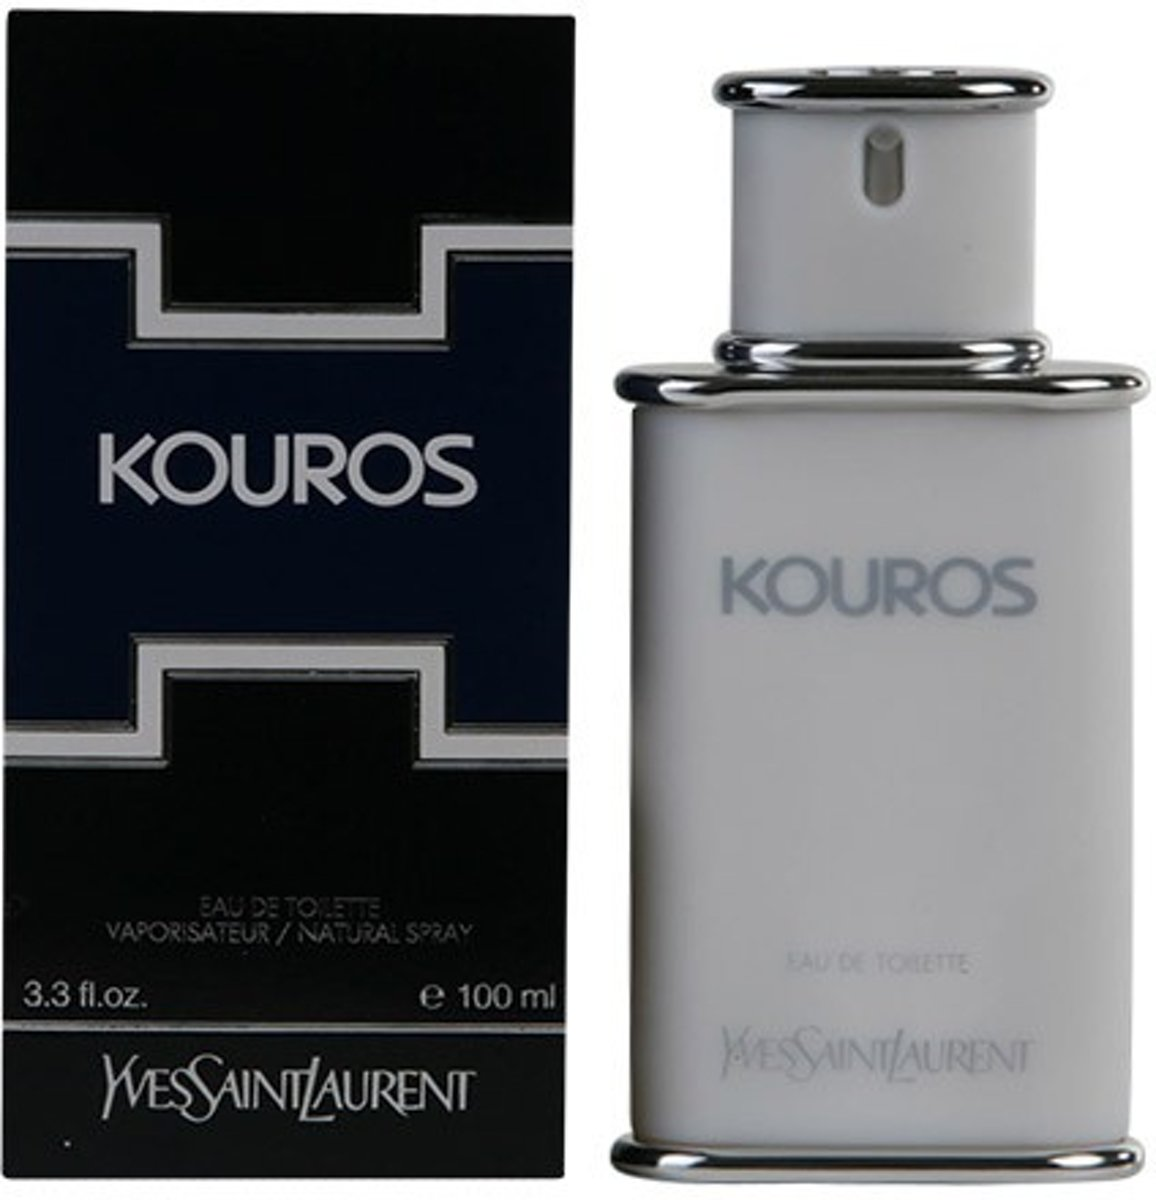 MULTI BUNDEL 2 stuks KOUROS Eau de Toilette Spray 100 ml